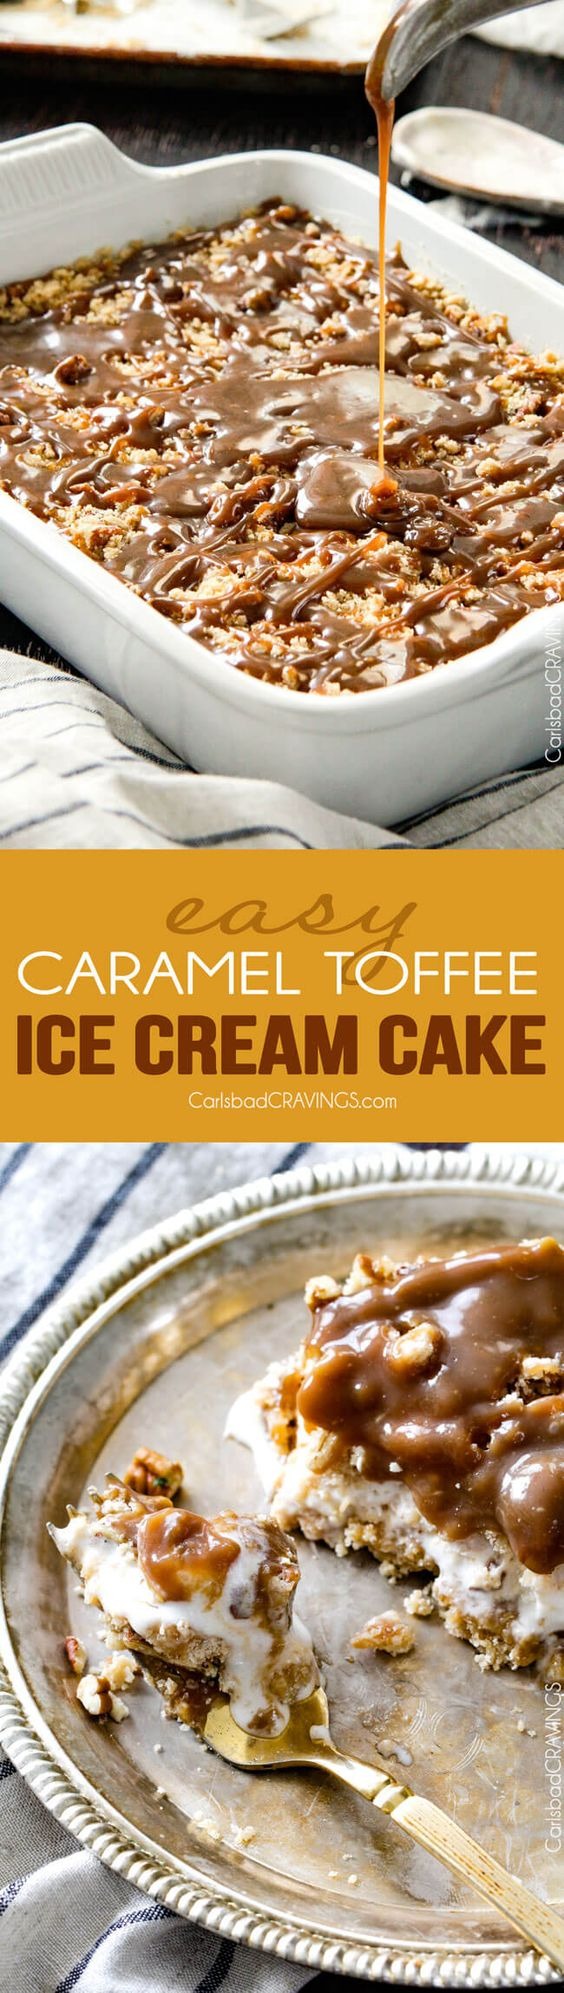 Caramel ice cream, Ice cream cakes and Toffee on Pinterest